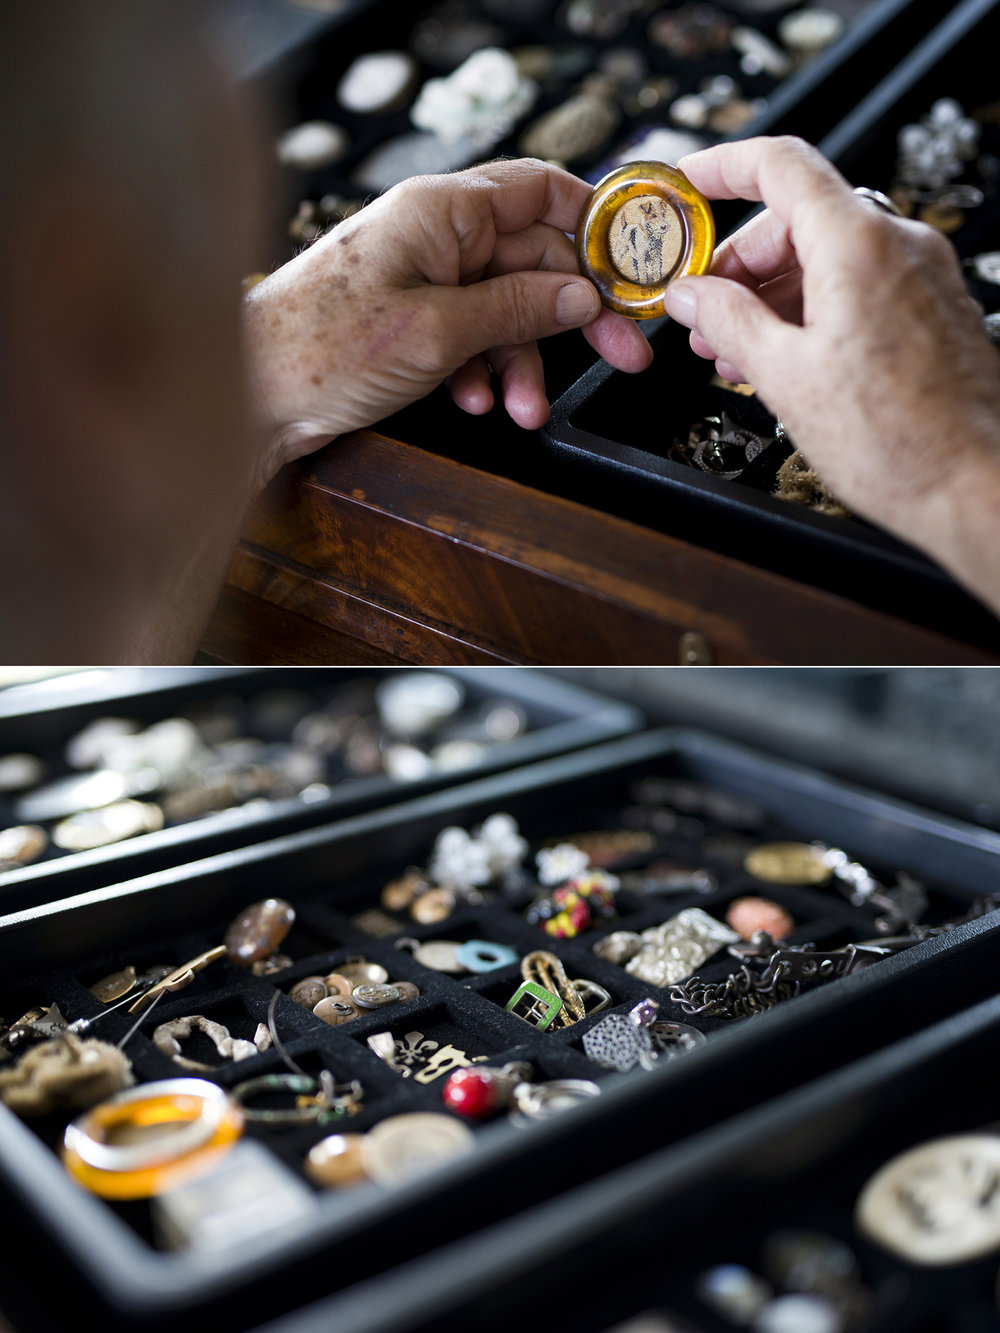 TOP: Barb handles a piece from a tray in the 'GOMA cabinet' (more on this below). BOTTOM: A lift-out tray full of components, found objects and little curiosities that help inspire design ideas with clients who visit the studio.